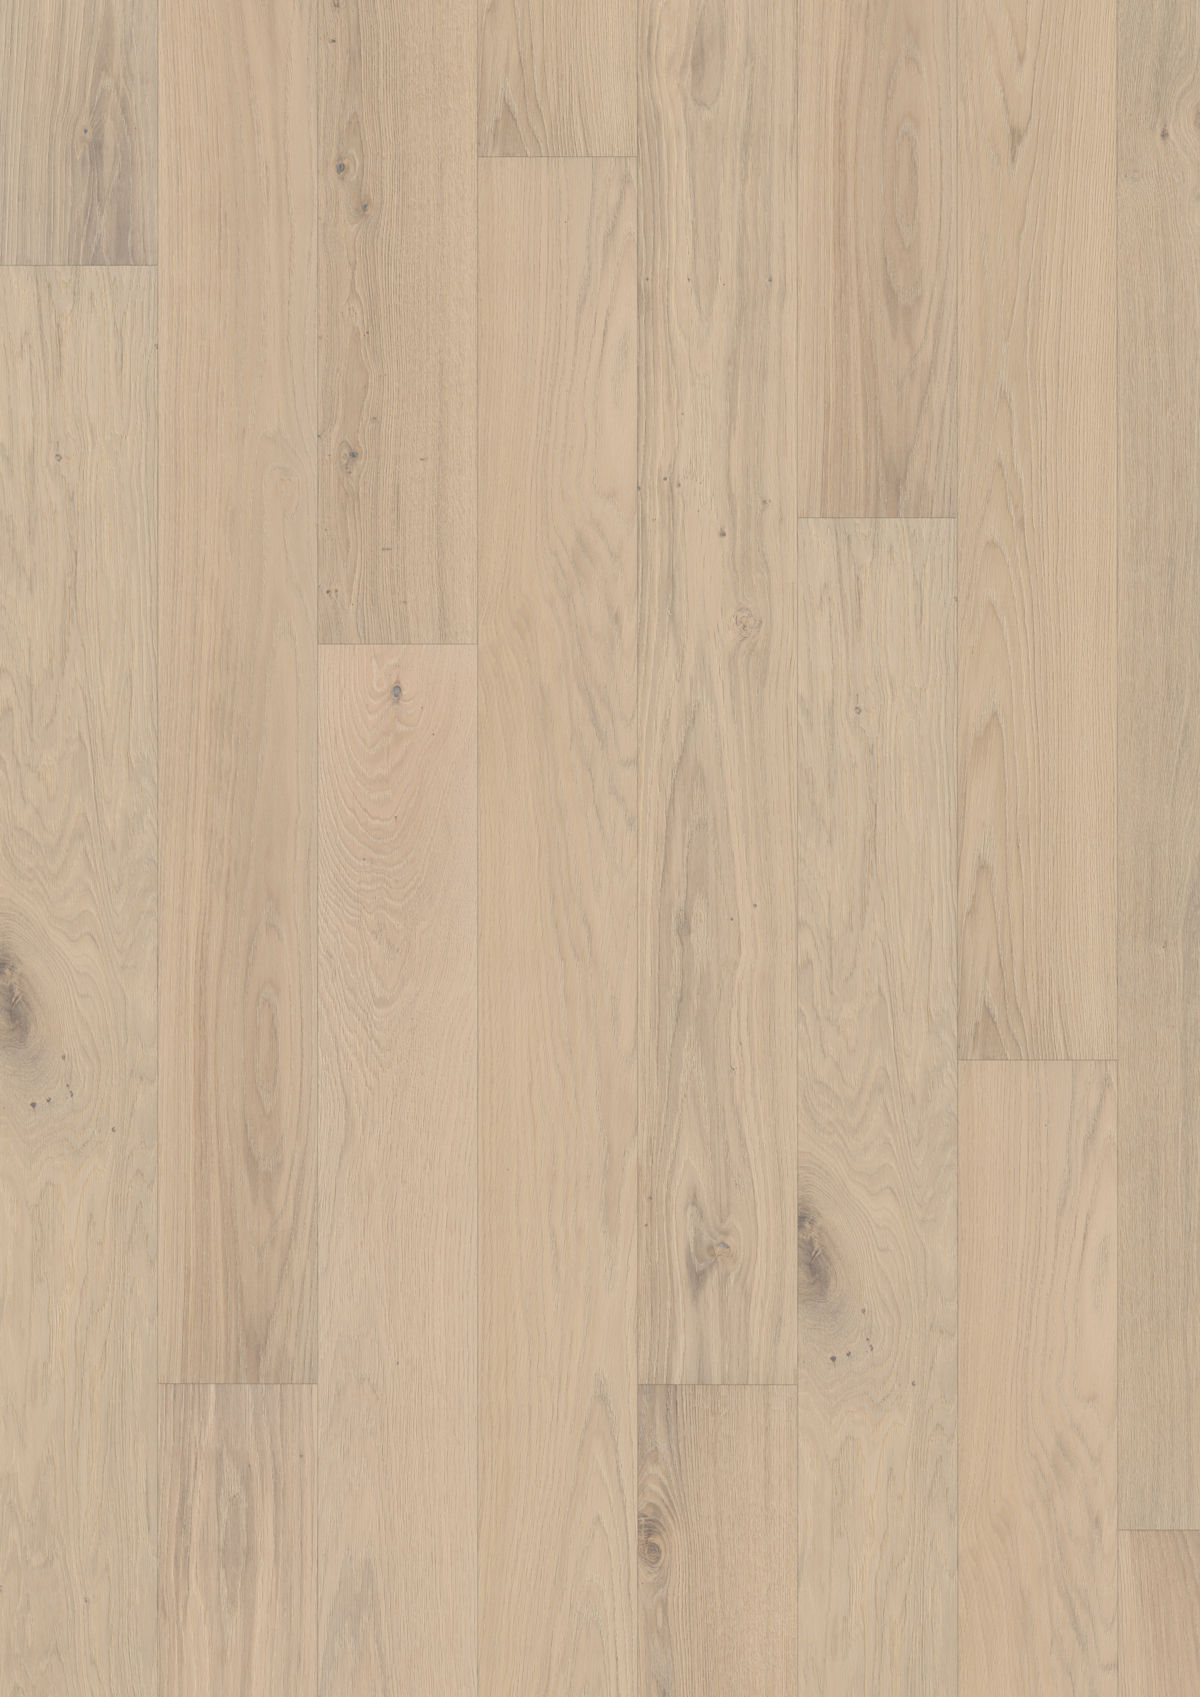 Kahrs oak estoril engineered wood flooring for Kahrs flooring